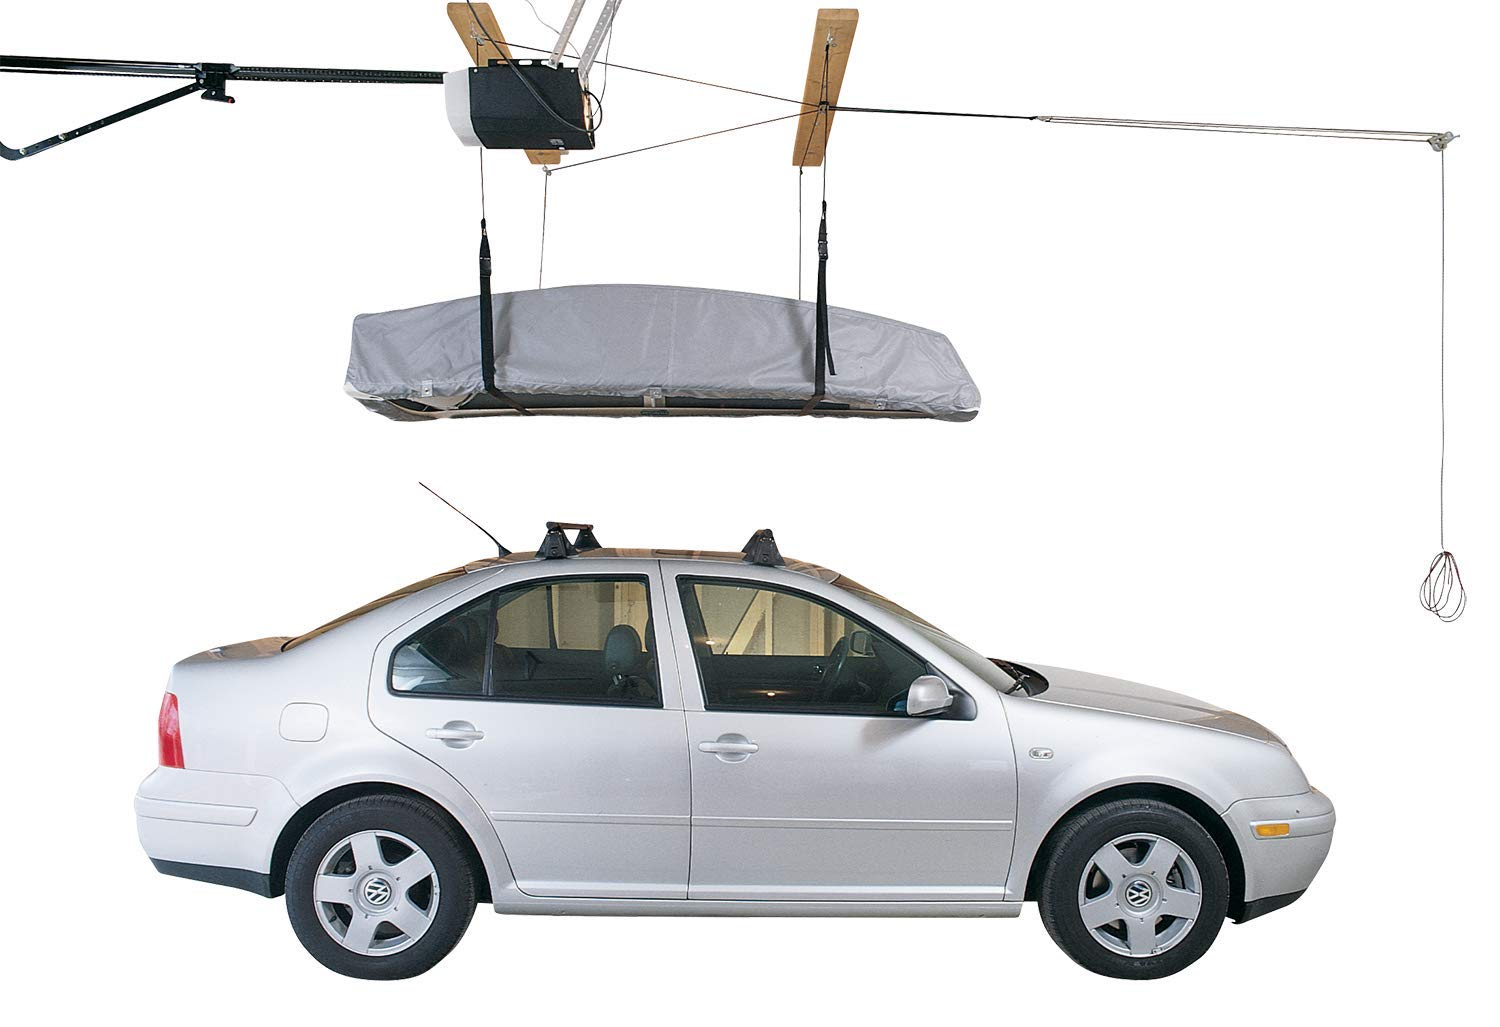 HARKEN Cargo Box Garage Storage Ceiling Hoist | 4 Point System | for 10ft Ceilings, 145lbs Max Load | 3:1 Mechanical Advantage | Easy Lift, Single-Person Operation, Rooftop, Hanger, Pulley, Carrier